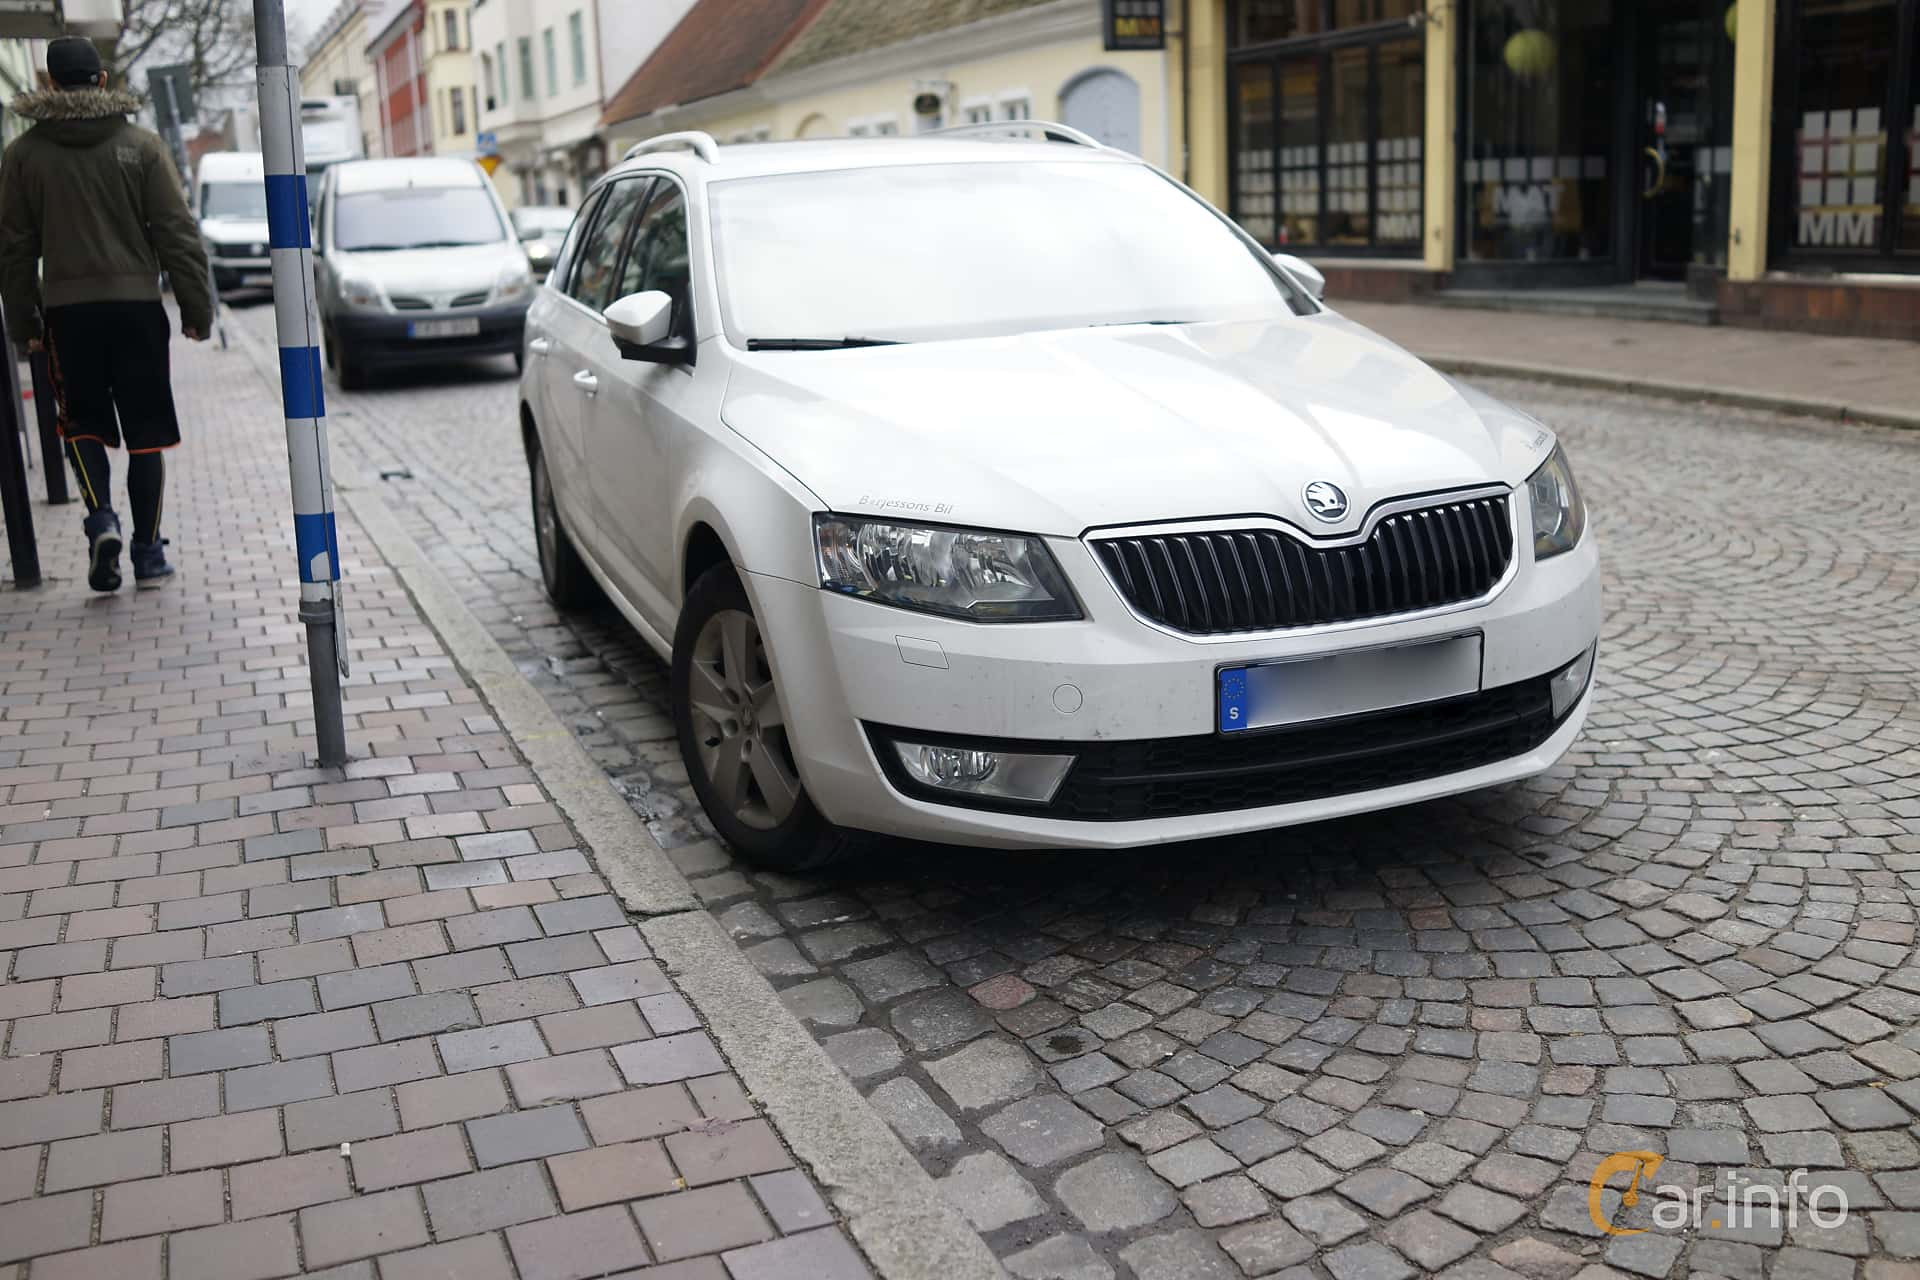 skoda octavia kombi 2 0 tdi dsg sekventiell 150hk 2014. Black Bedroom Furniture Sets. Home Design Ideas